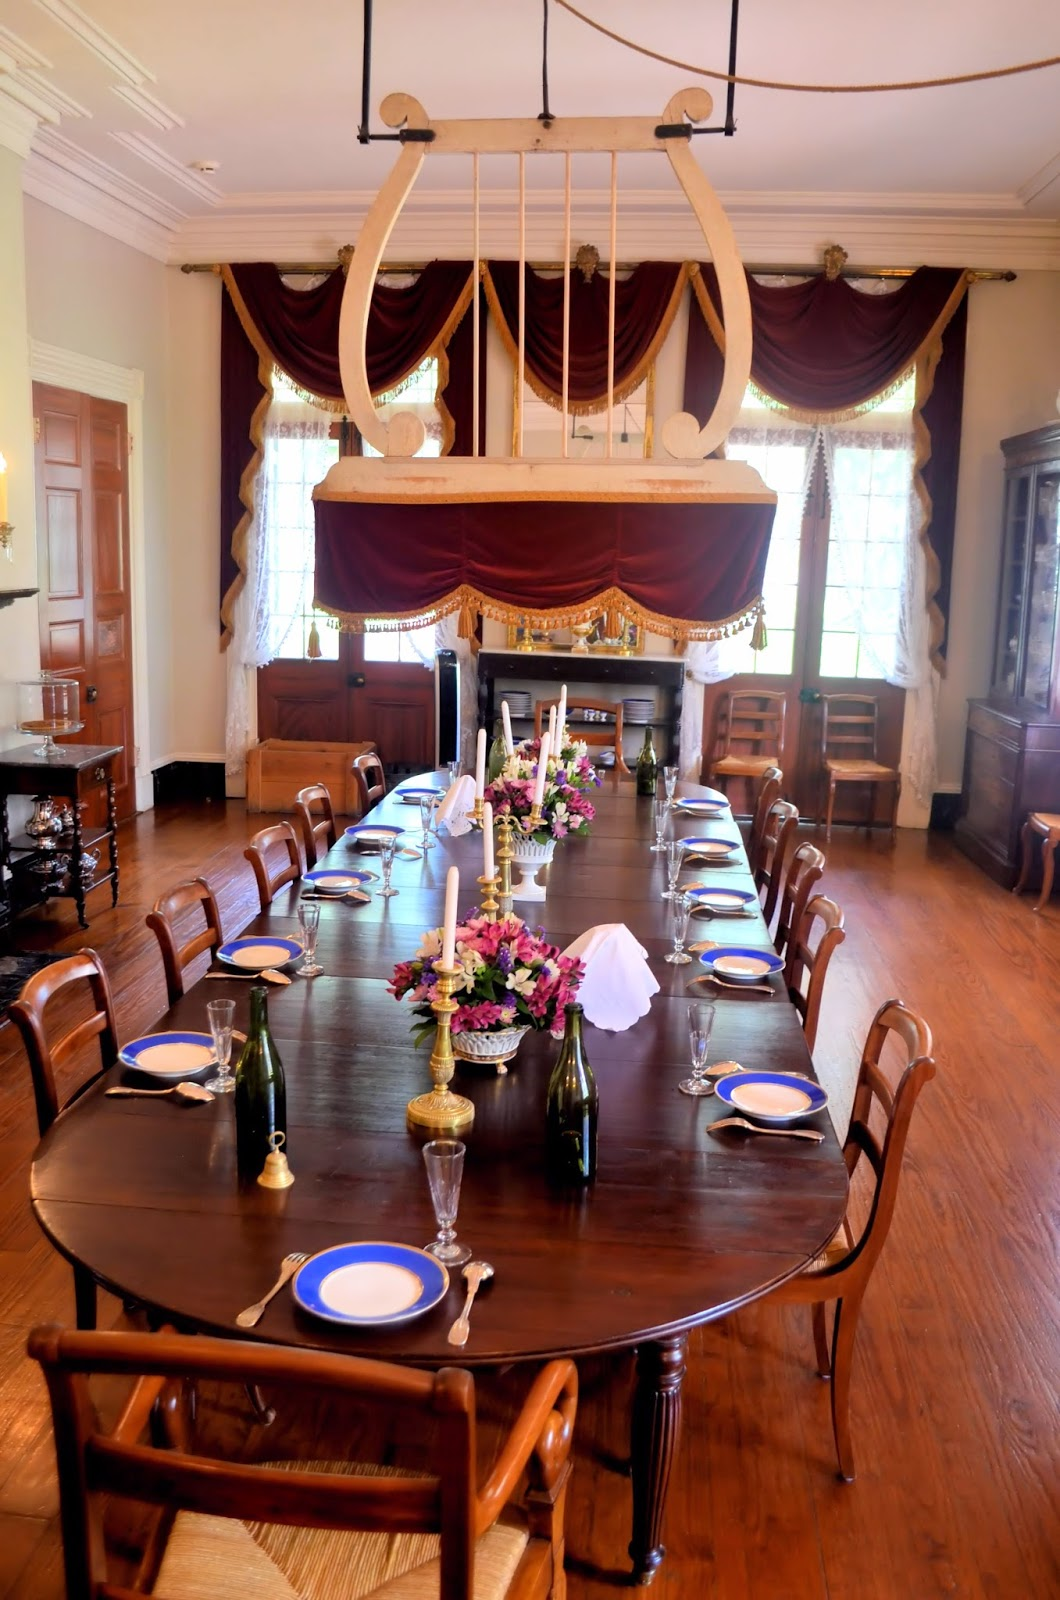 A Punkah Fan Hangs Over This Long Dining Room Table When The Family Had Slaves House Slave Would Sit In Corner And Pull On Rope